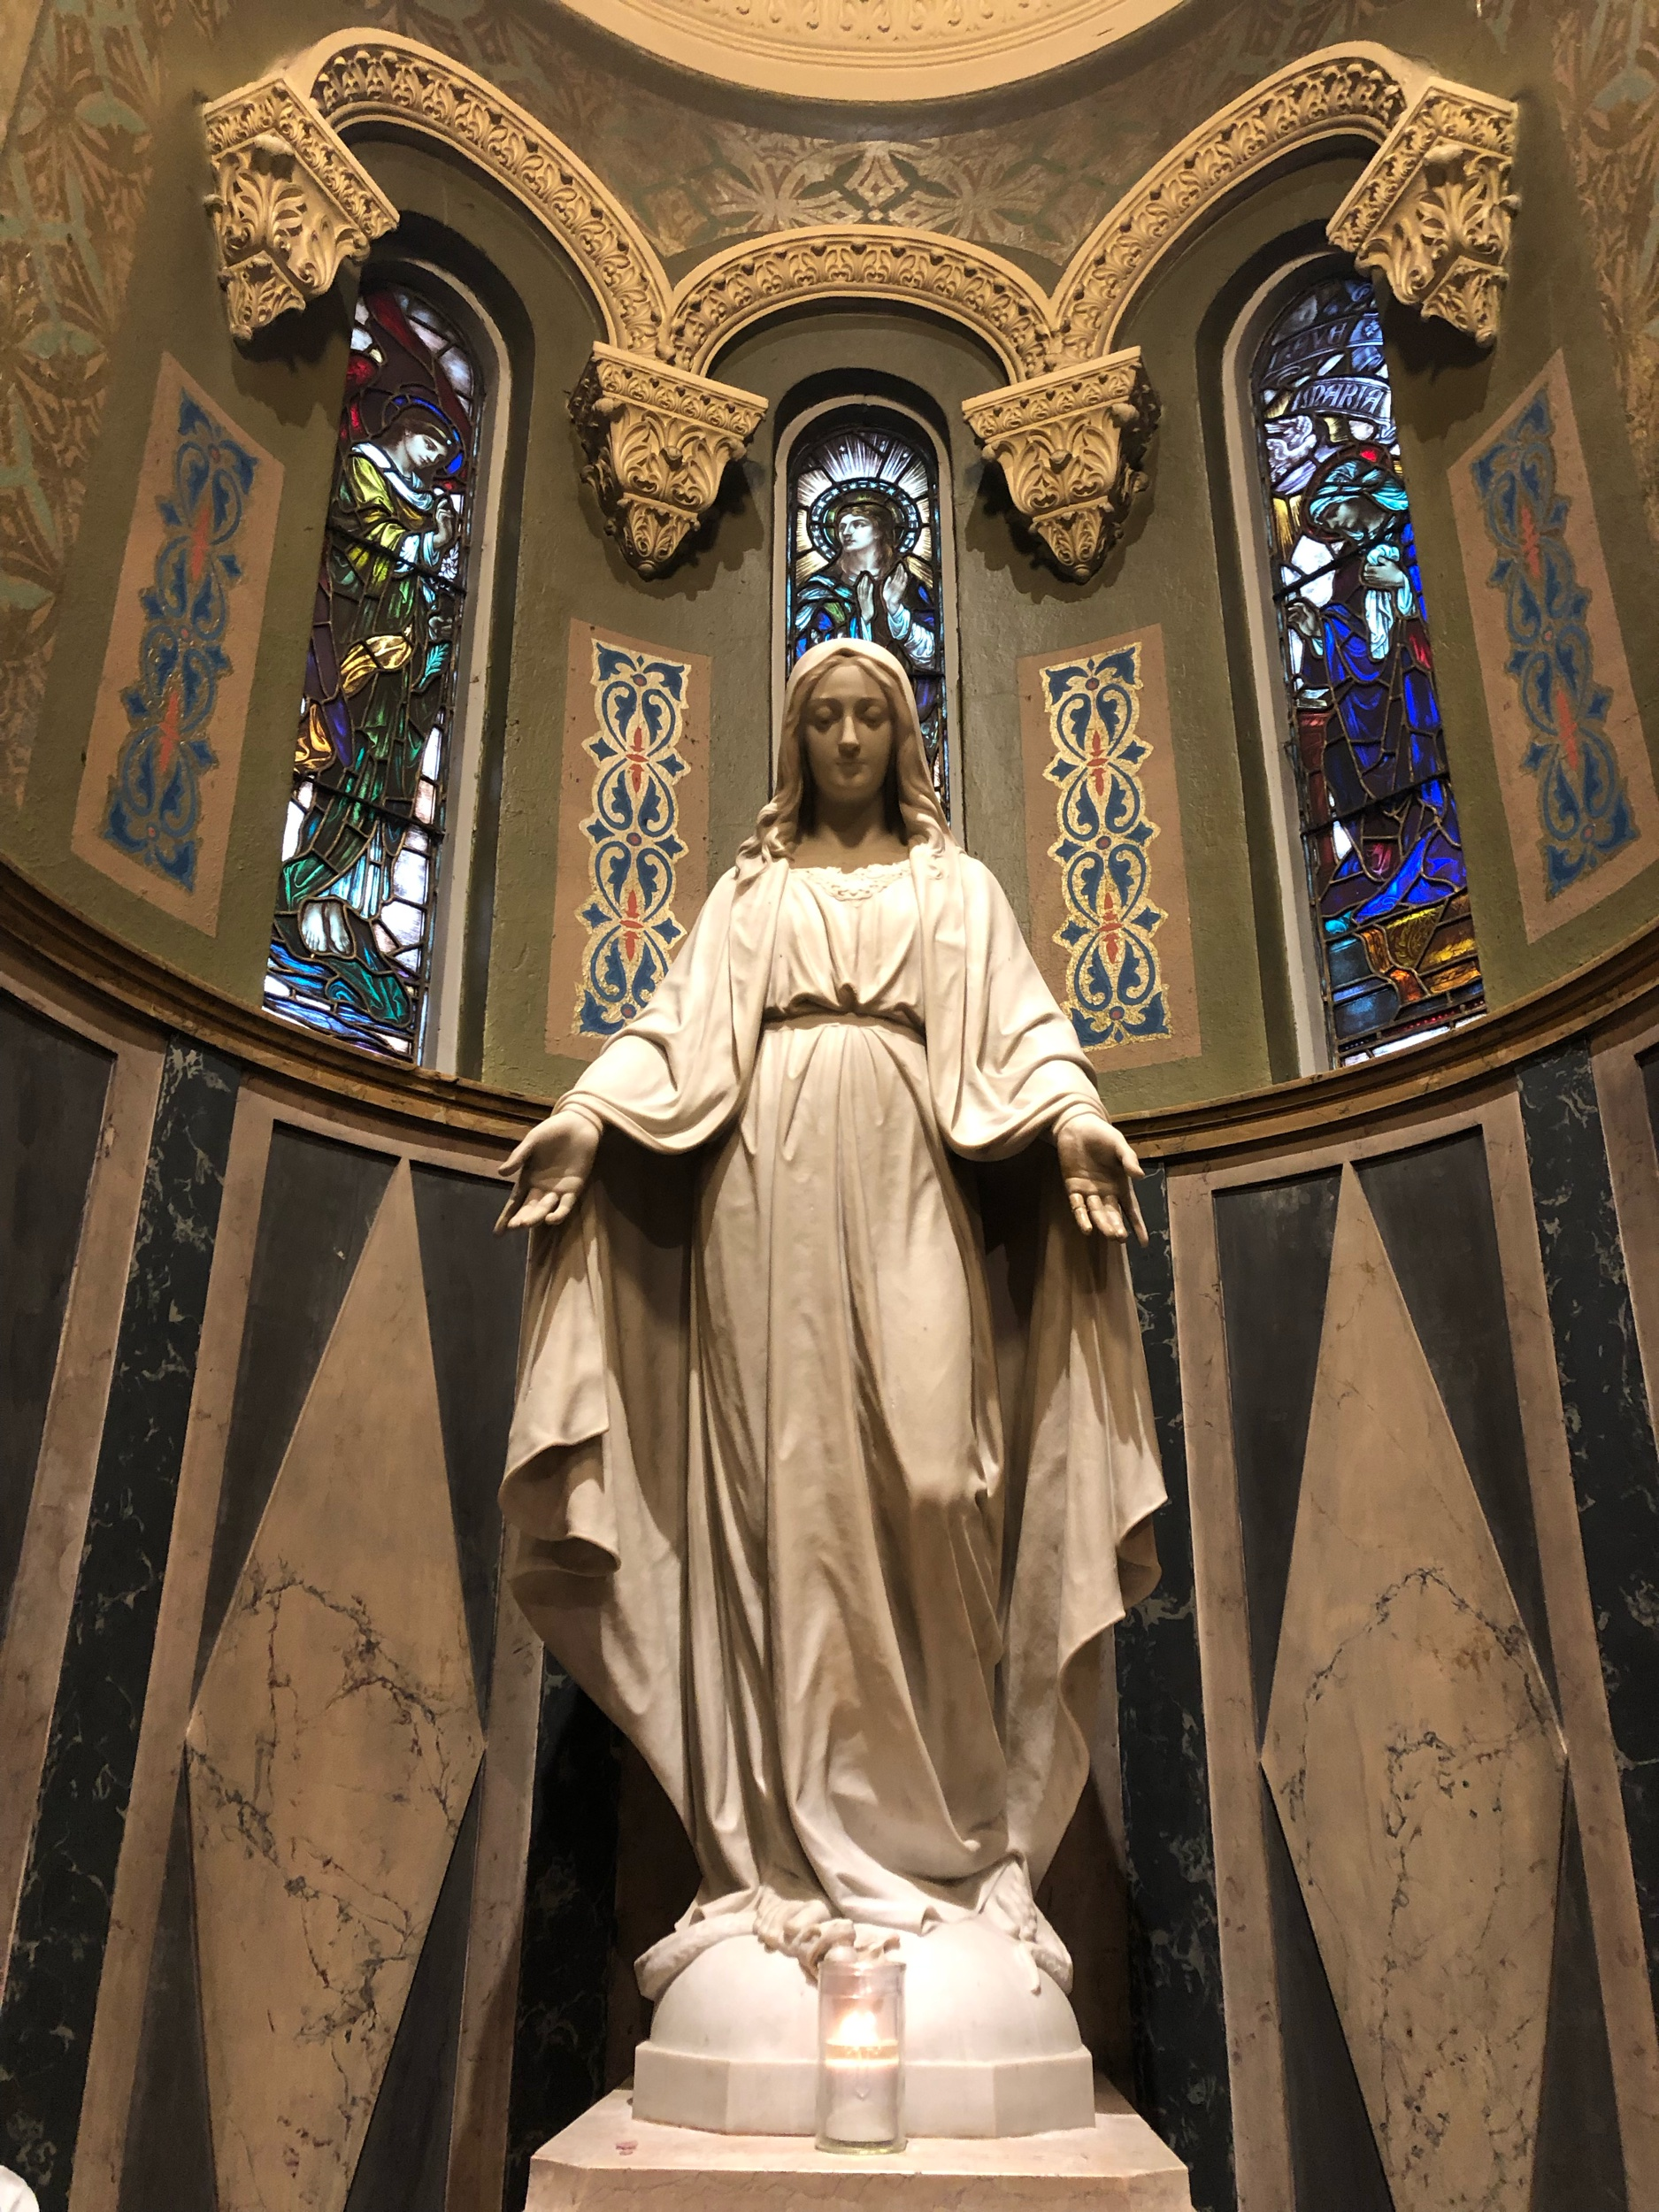 Statue of Mary at St. Clement Catholic Church in Chicago, IL.